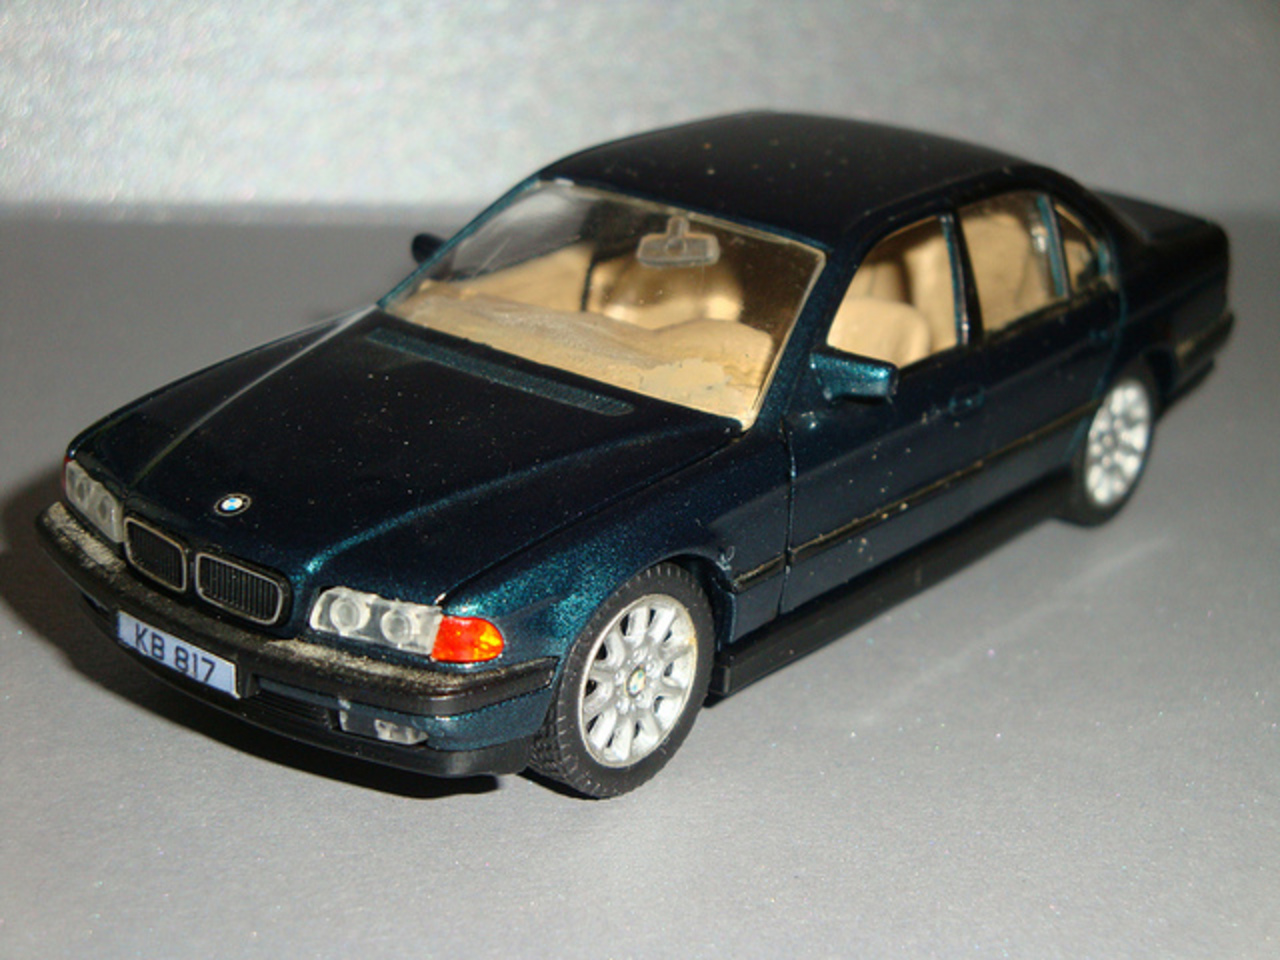 1/43 BMW 7 series green | Flickr - Photo Sharing!